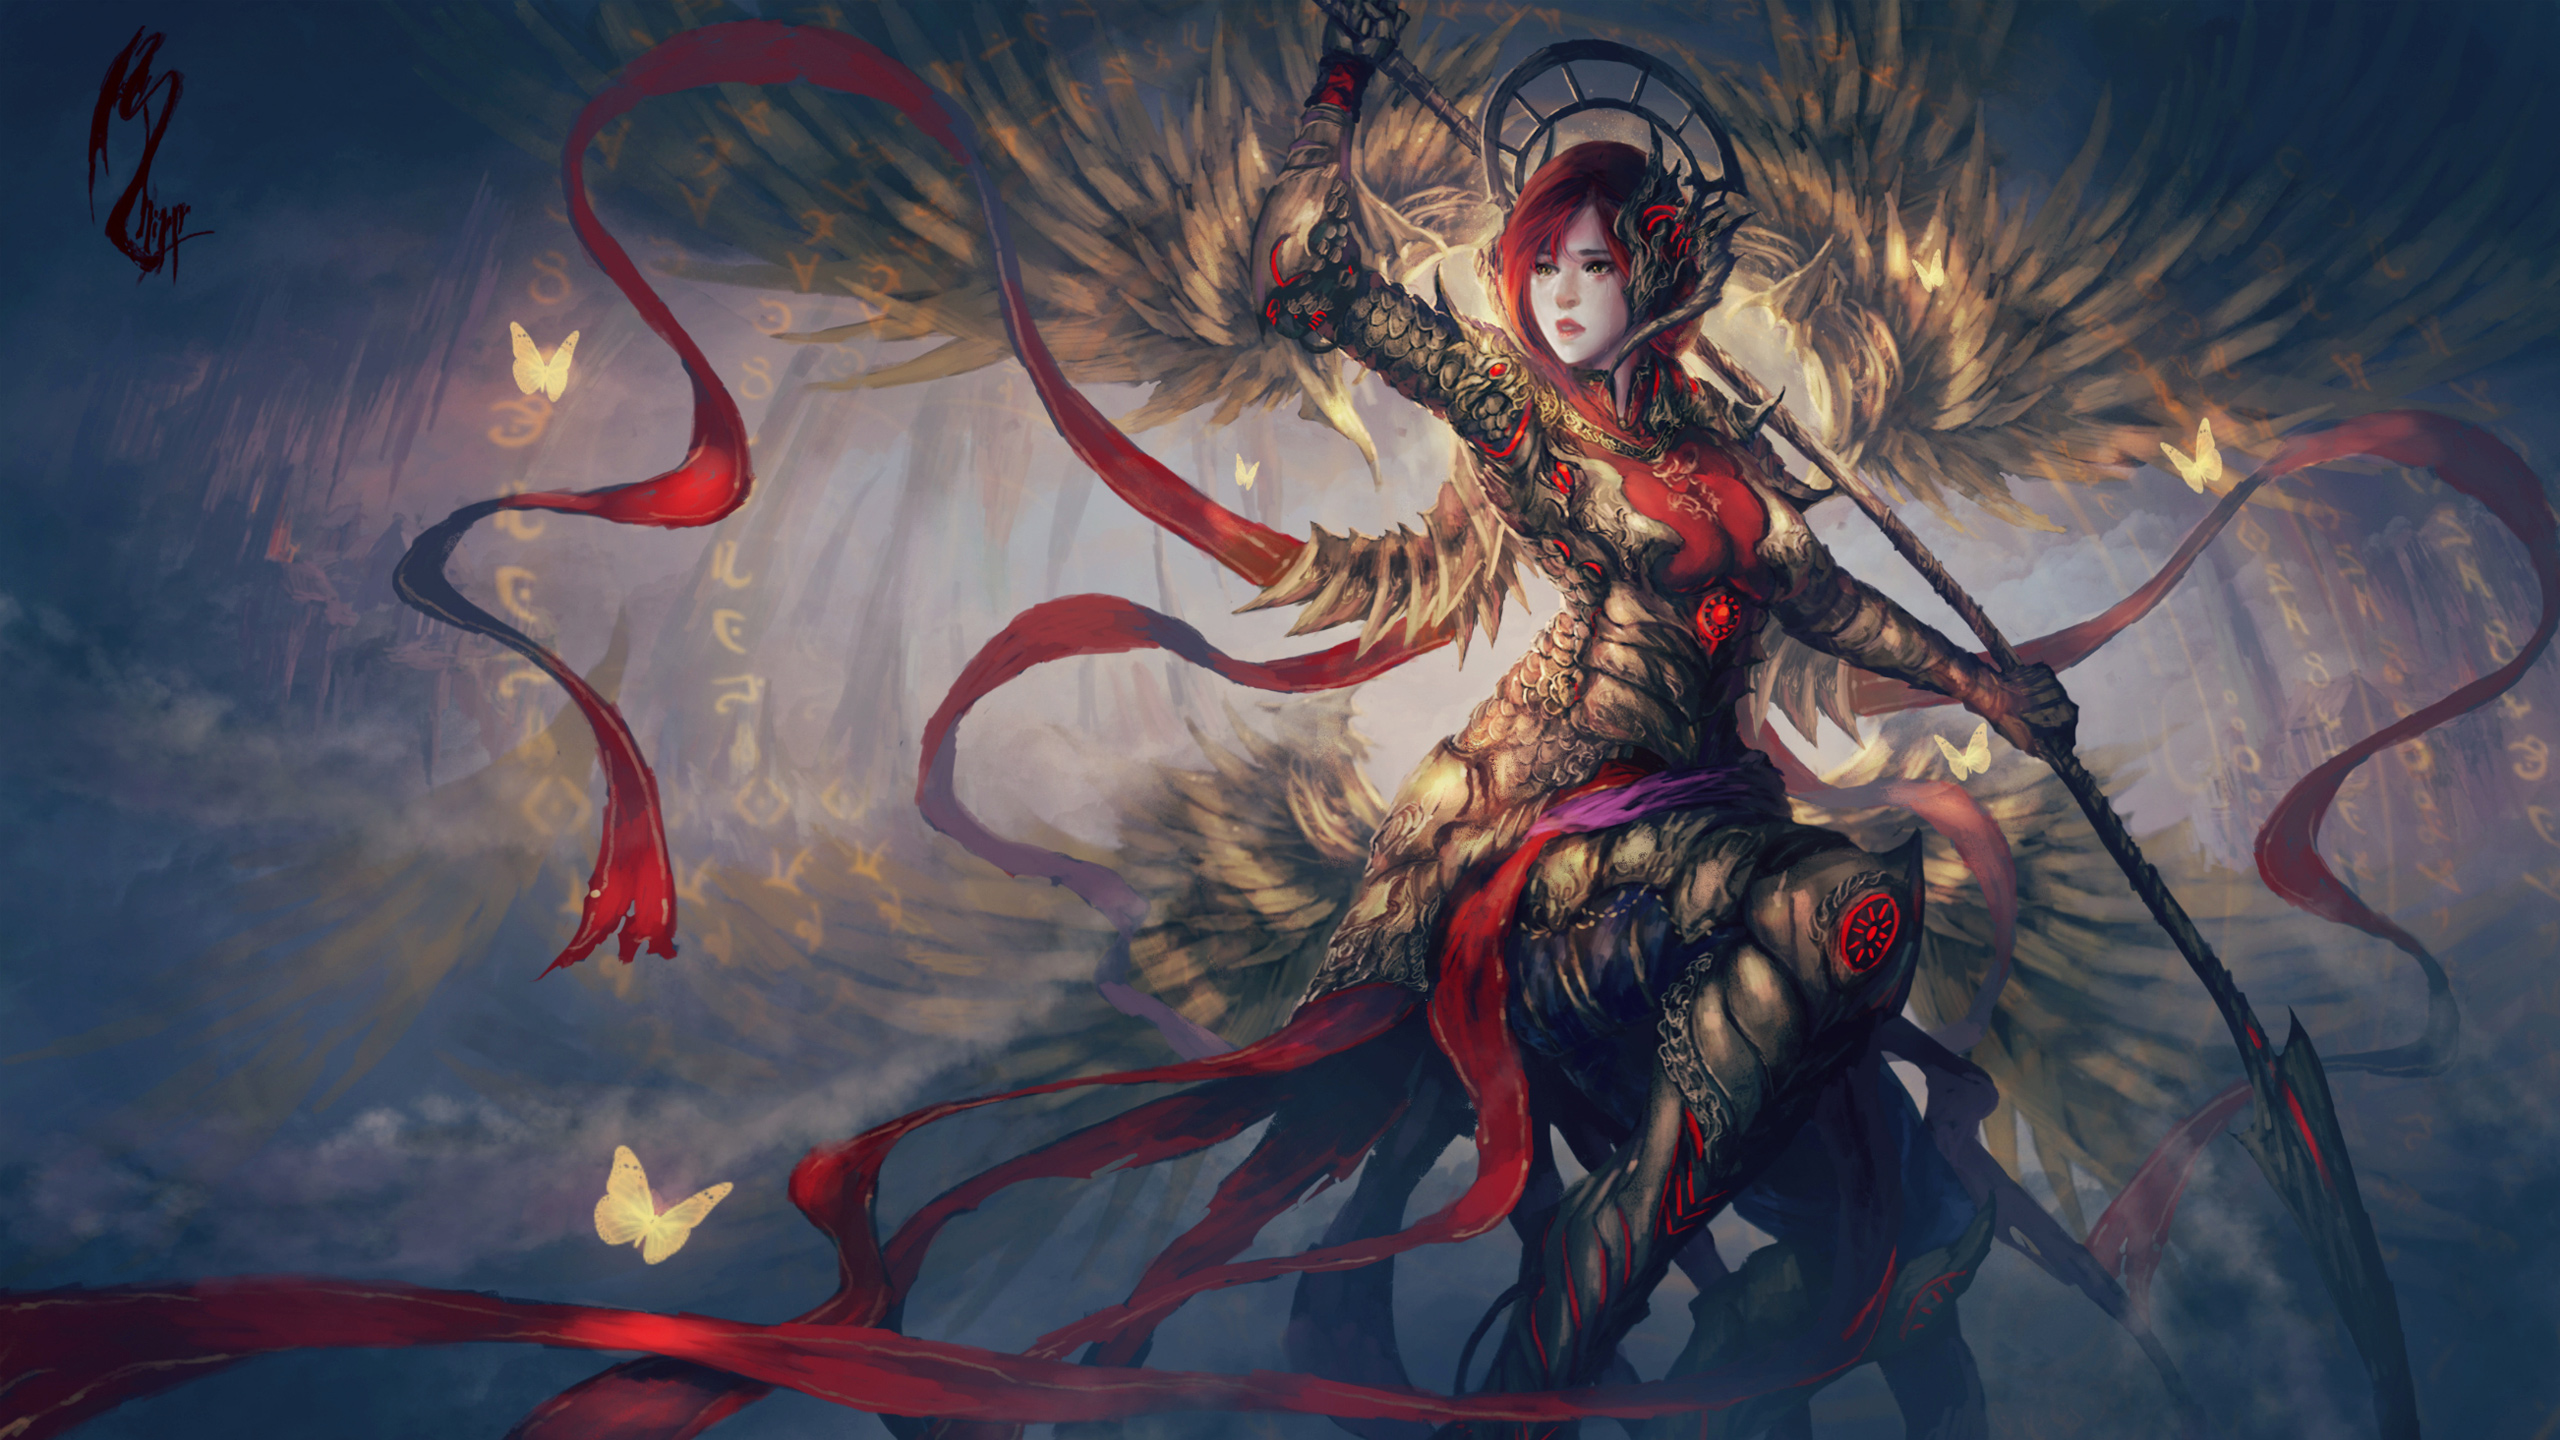 Fantasy Warrior Artwork218125775 - Fantasy Warrior Artwork - Warrior, Symmetra, Fantasy, Artwork